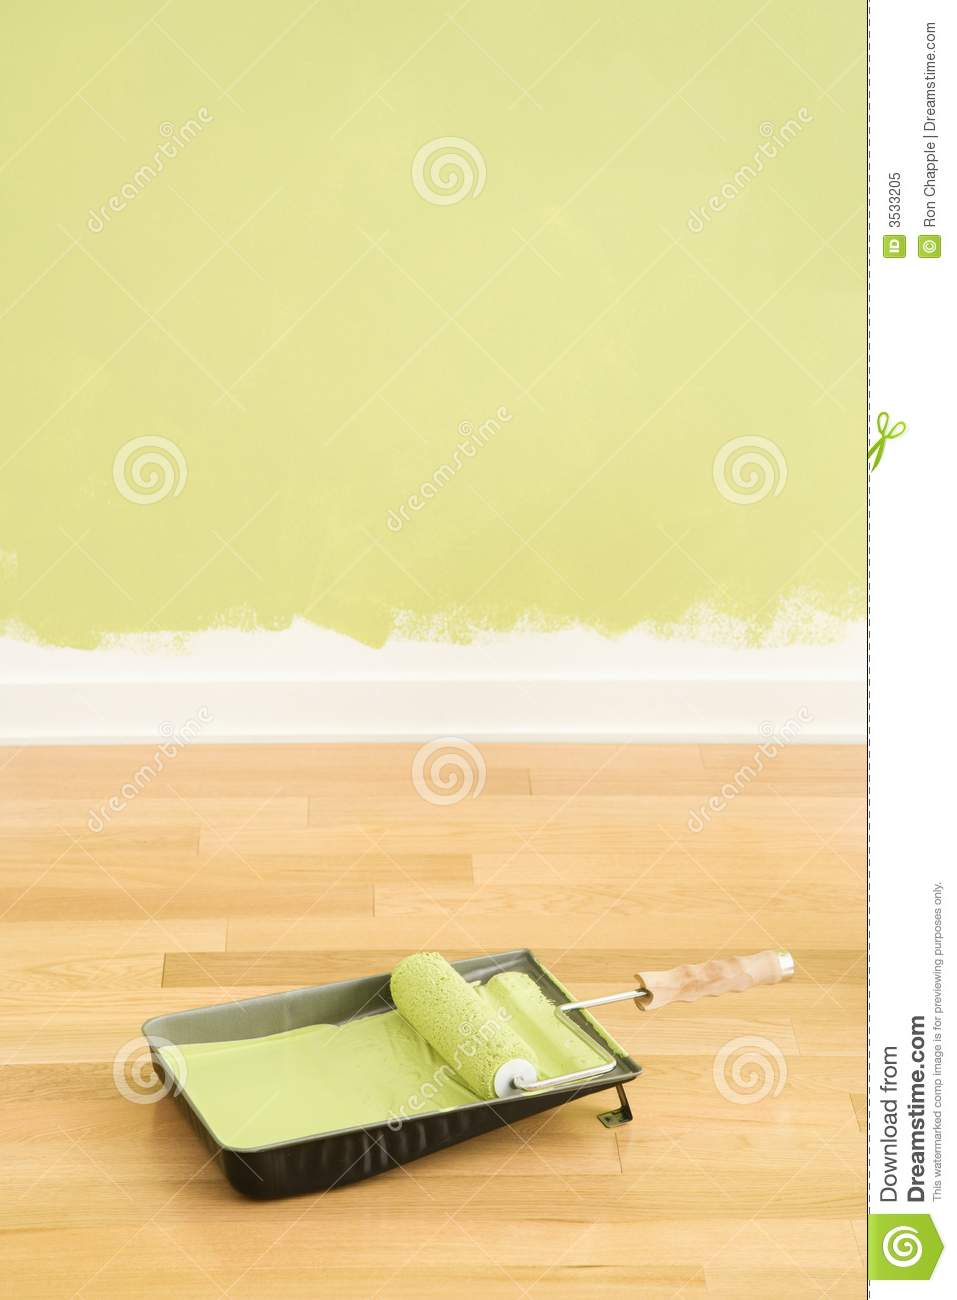 Paint supplies and wall royalty free stock photo image for Wall painting utensils